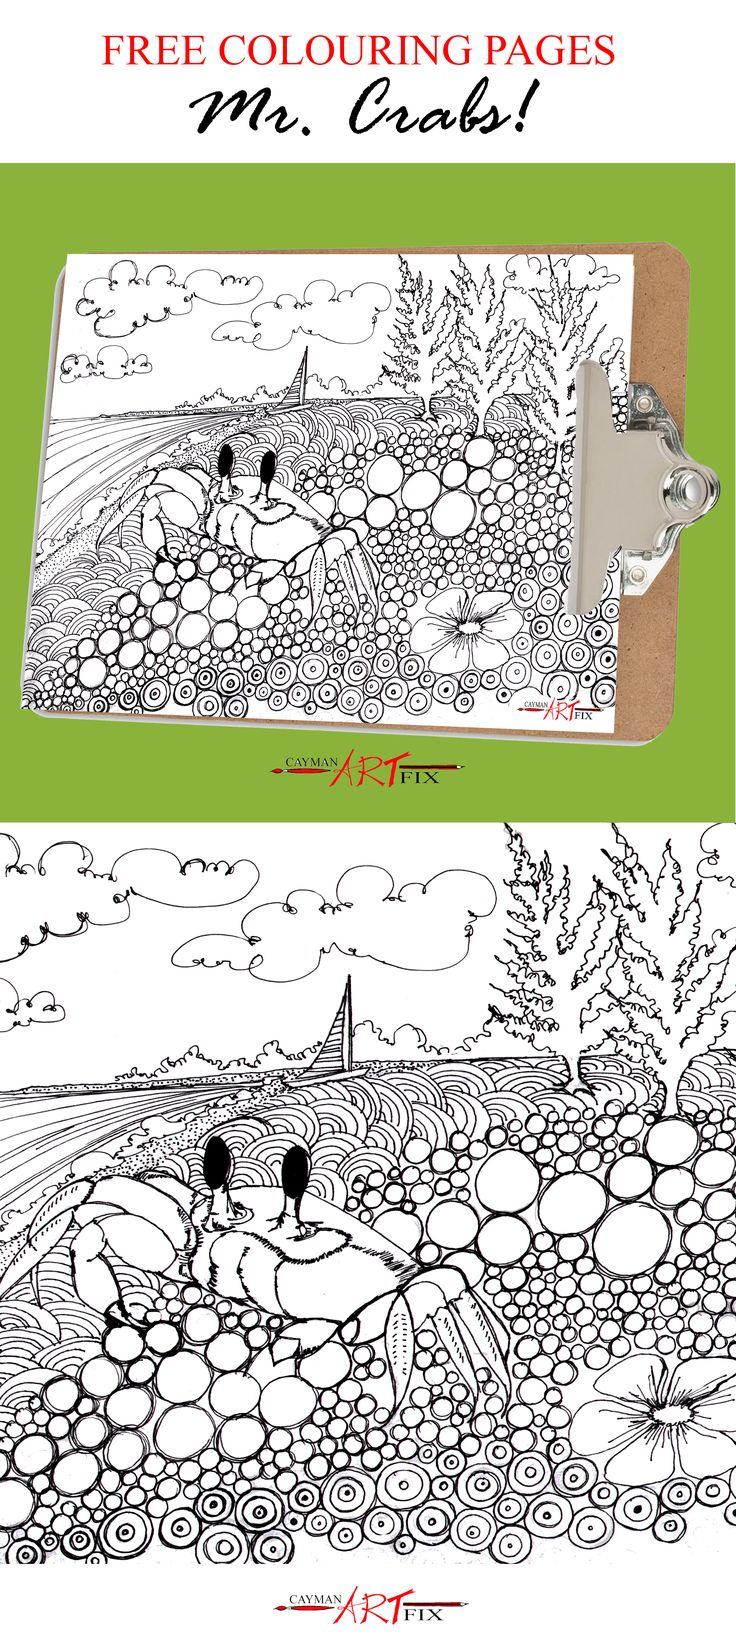 33 best Adult Coloring images on Pinterest | Coloring pages, Adult ...